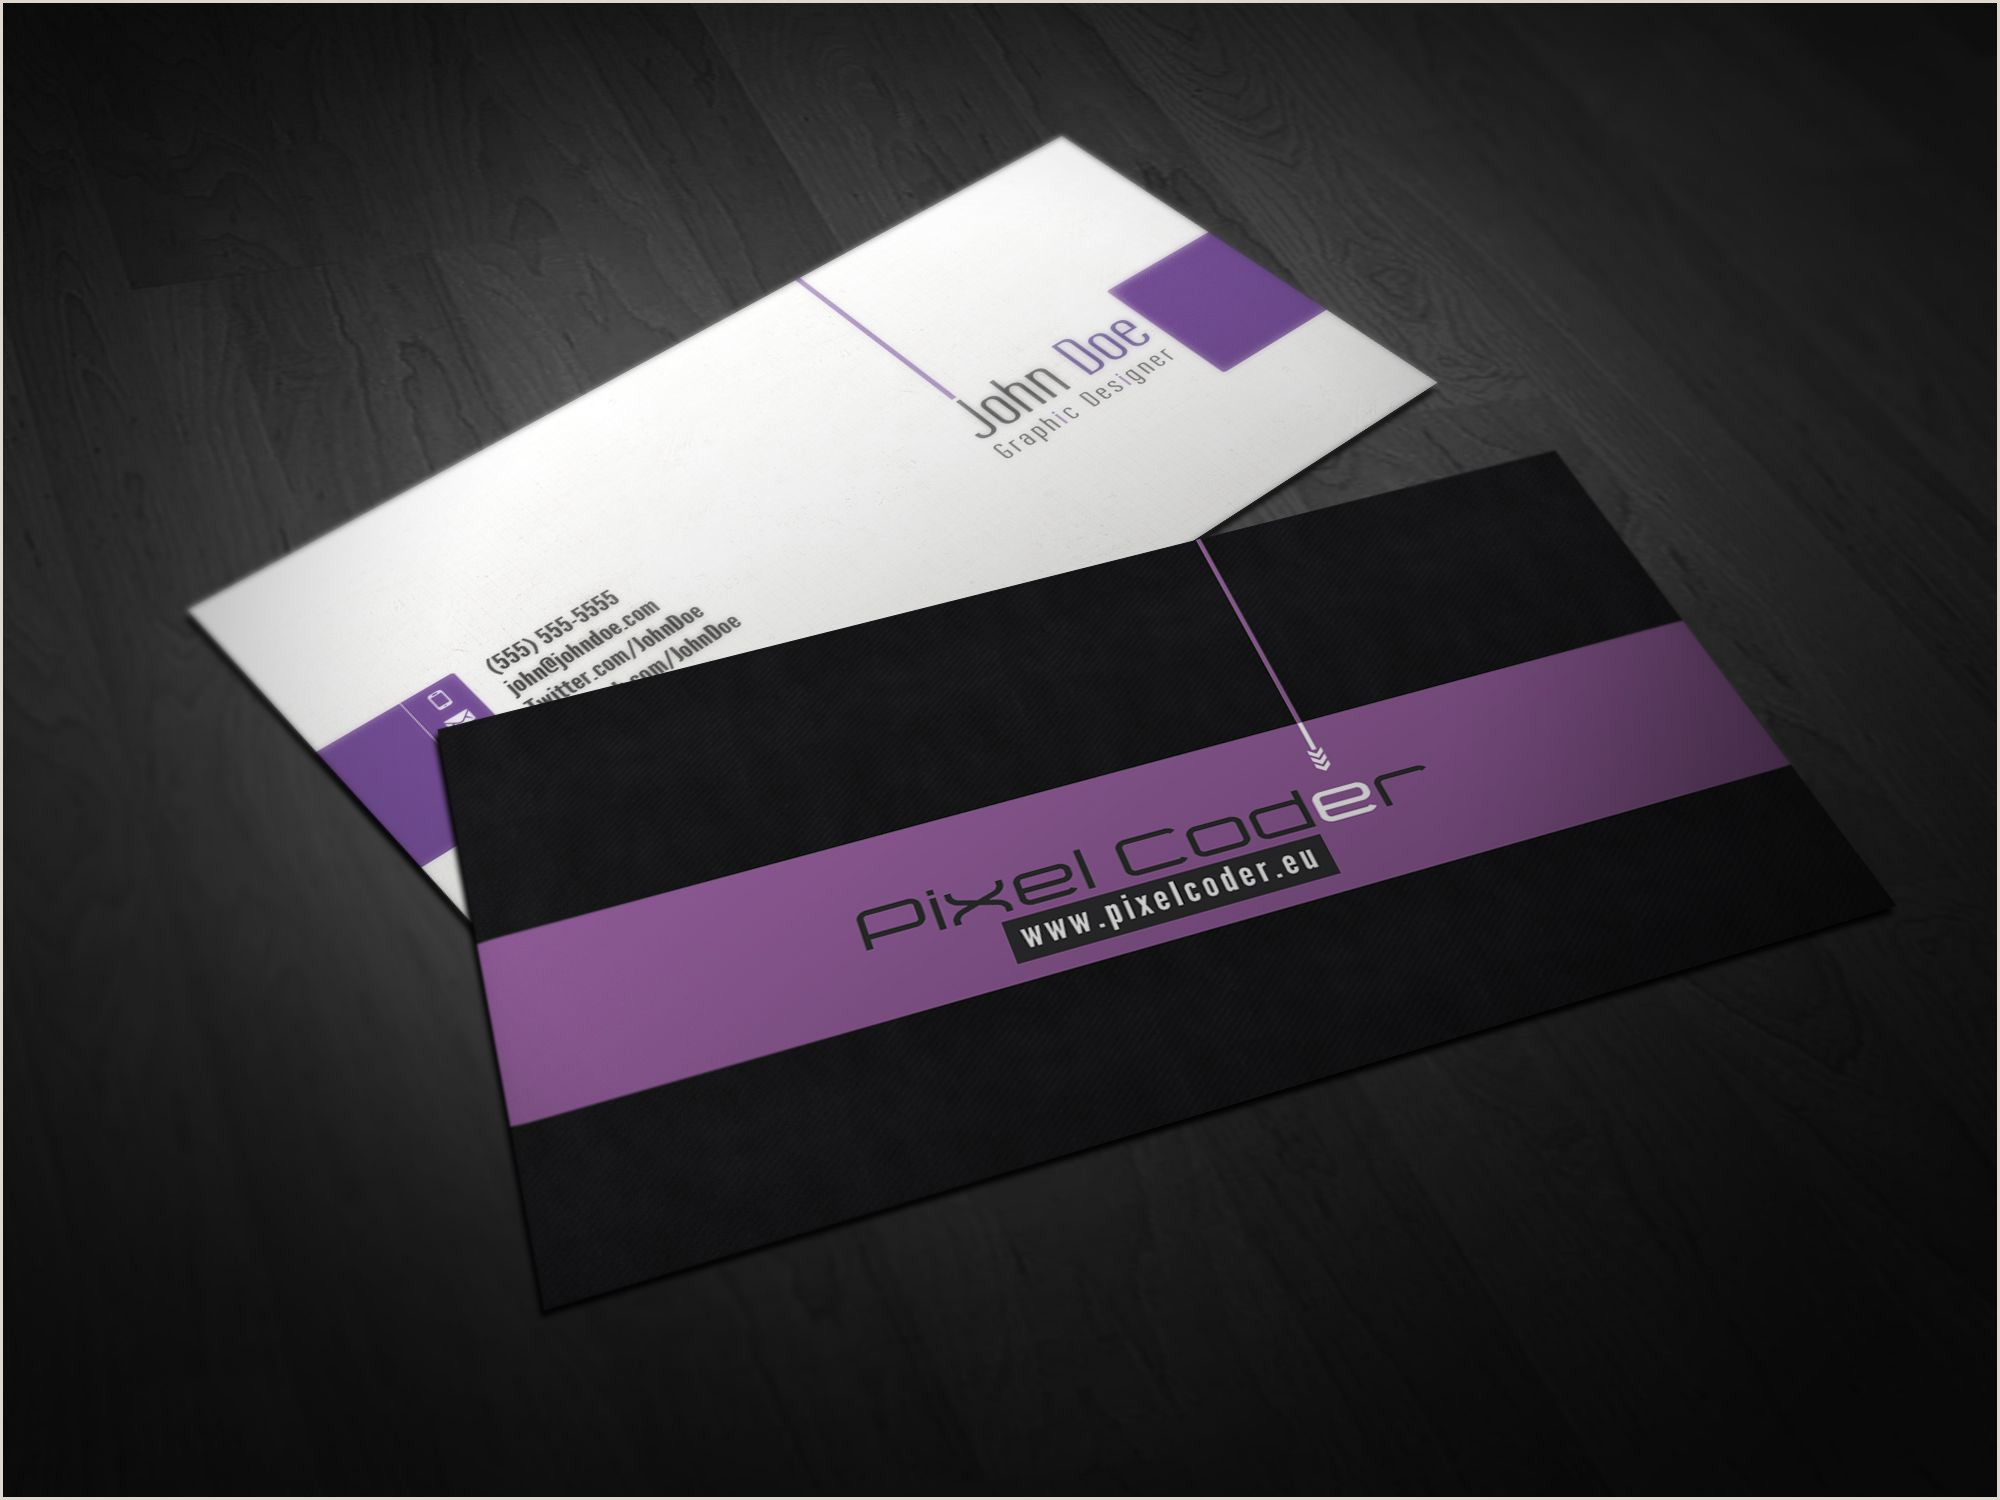 Best Image Size For Business Cards Shop Business Card Templatebest Business Templates